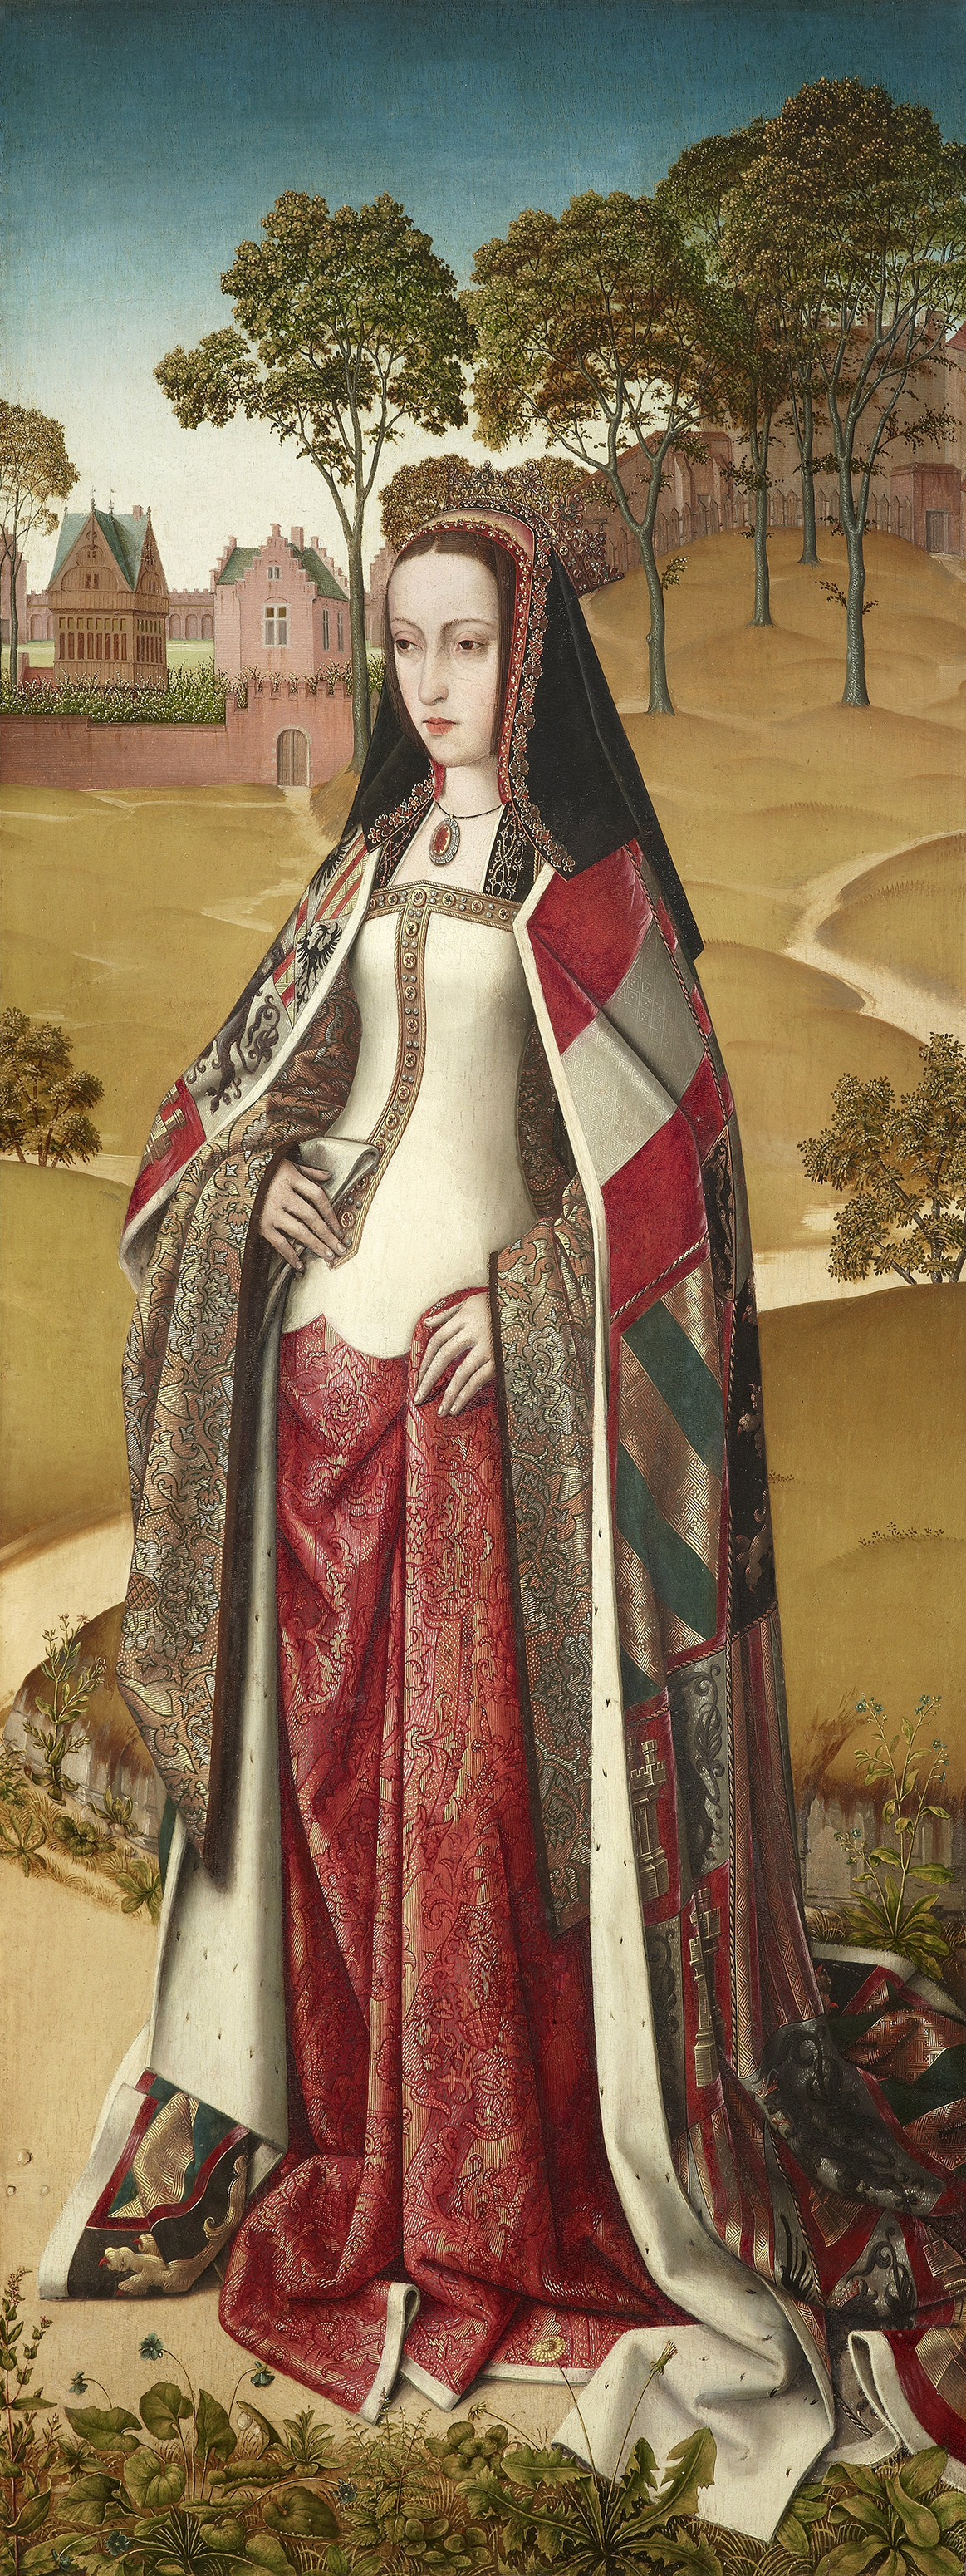 Portrait of Joanna of Castile (1479-1555), Queen of Castile and León (with Philip I) from 1504 to 1506; Consort to the ruler of the Netherlands (1496-1506), Princess of Asturias (1502–1504) | Portraits of Kings